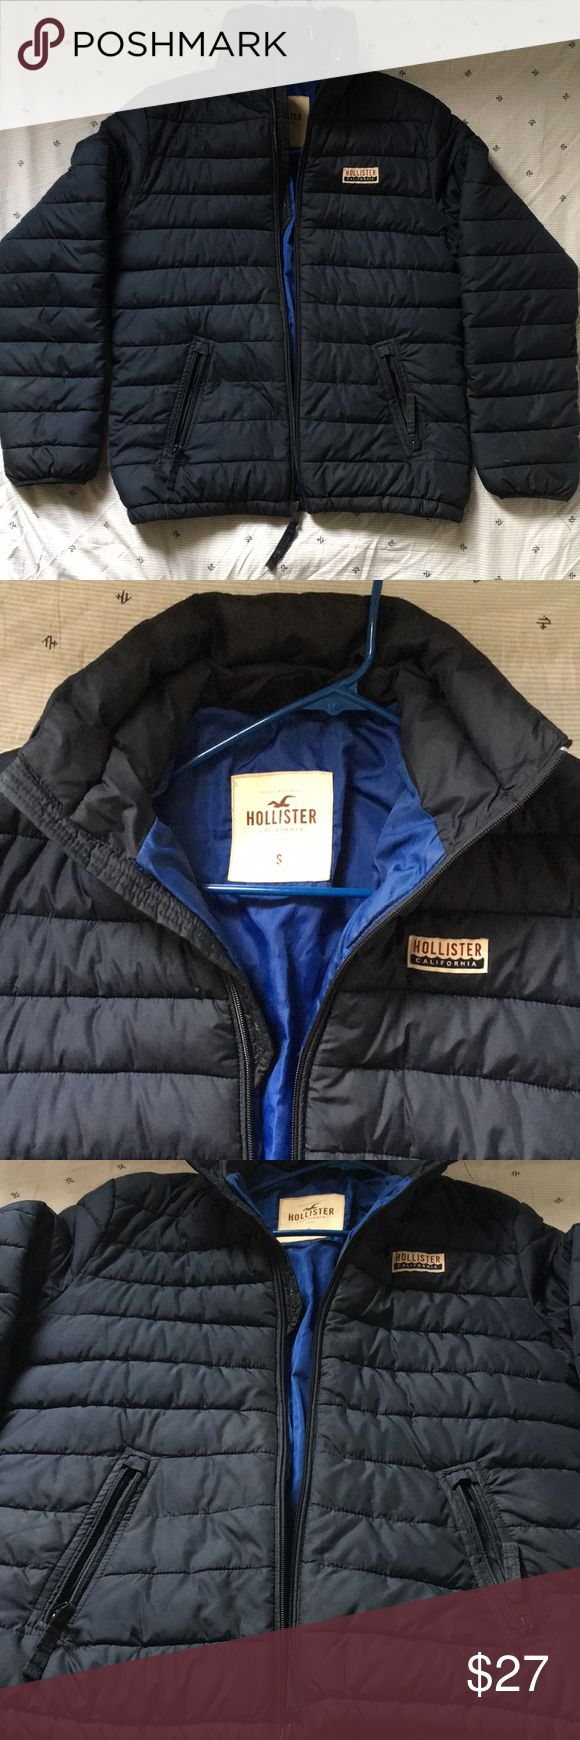 Hollister Jacket Perfect to keep your body warm all winter long 🤙🏼 Hollister Jackets & Coats Puffers